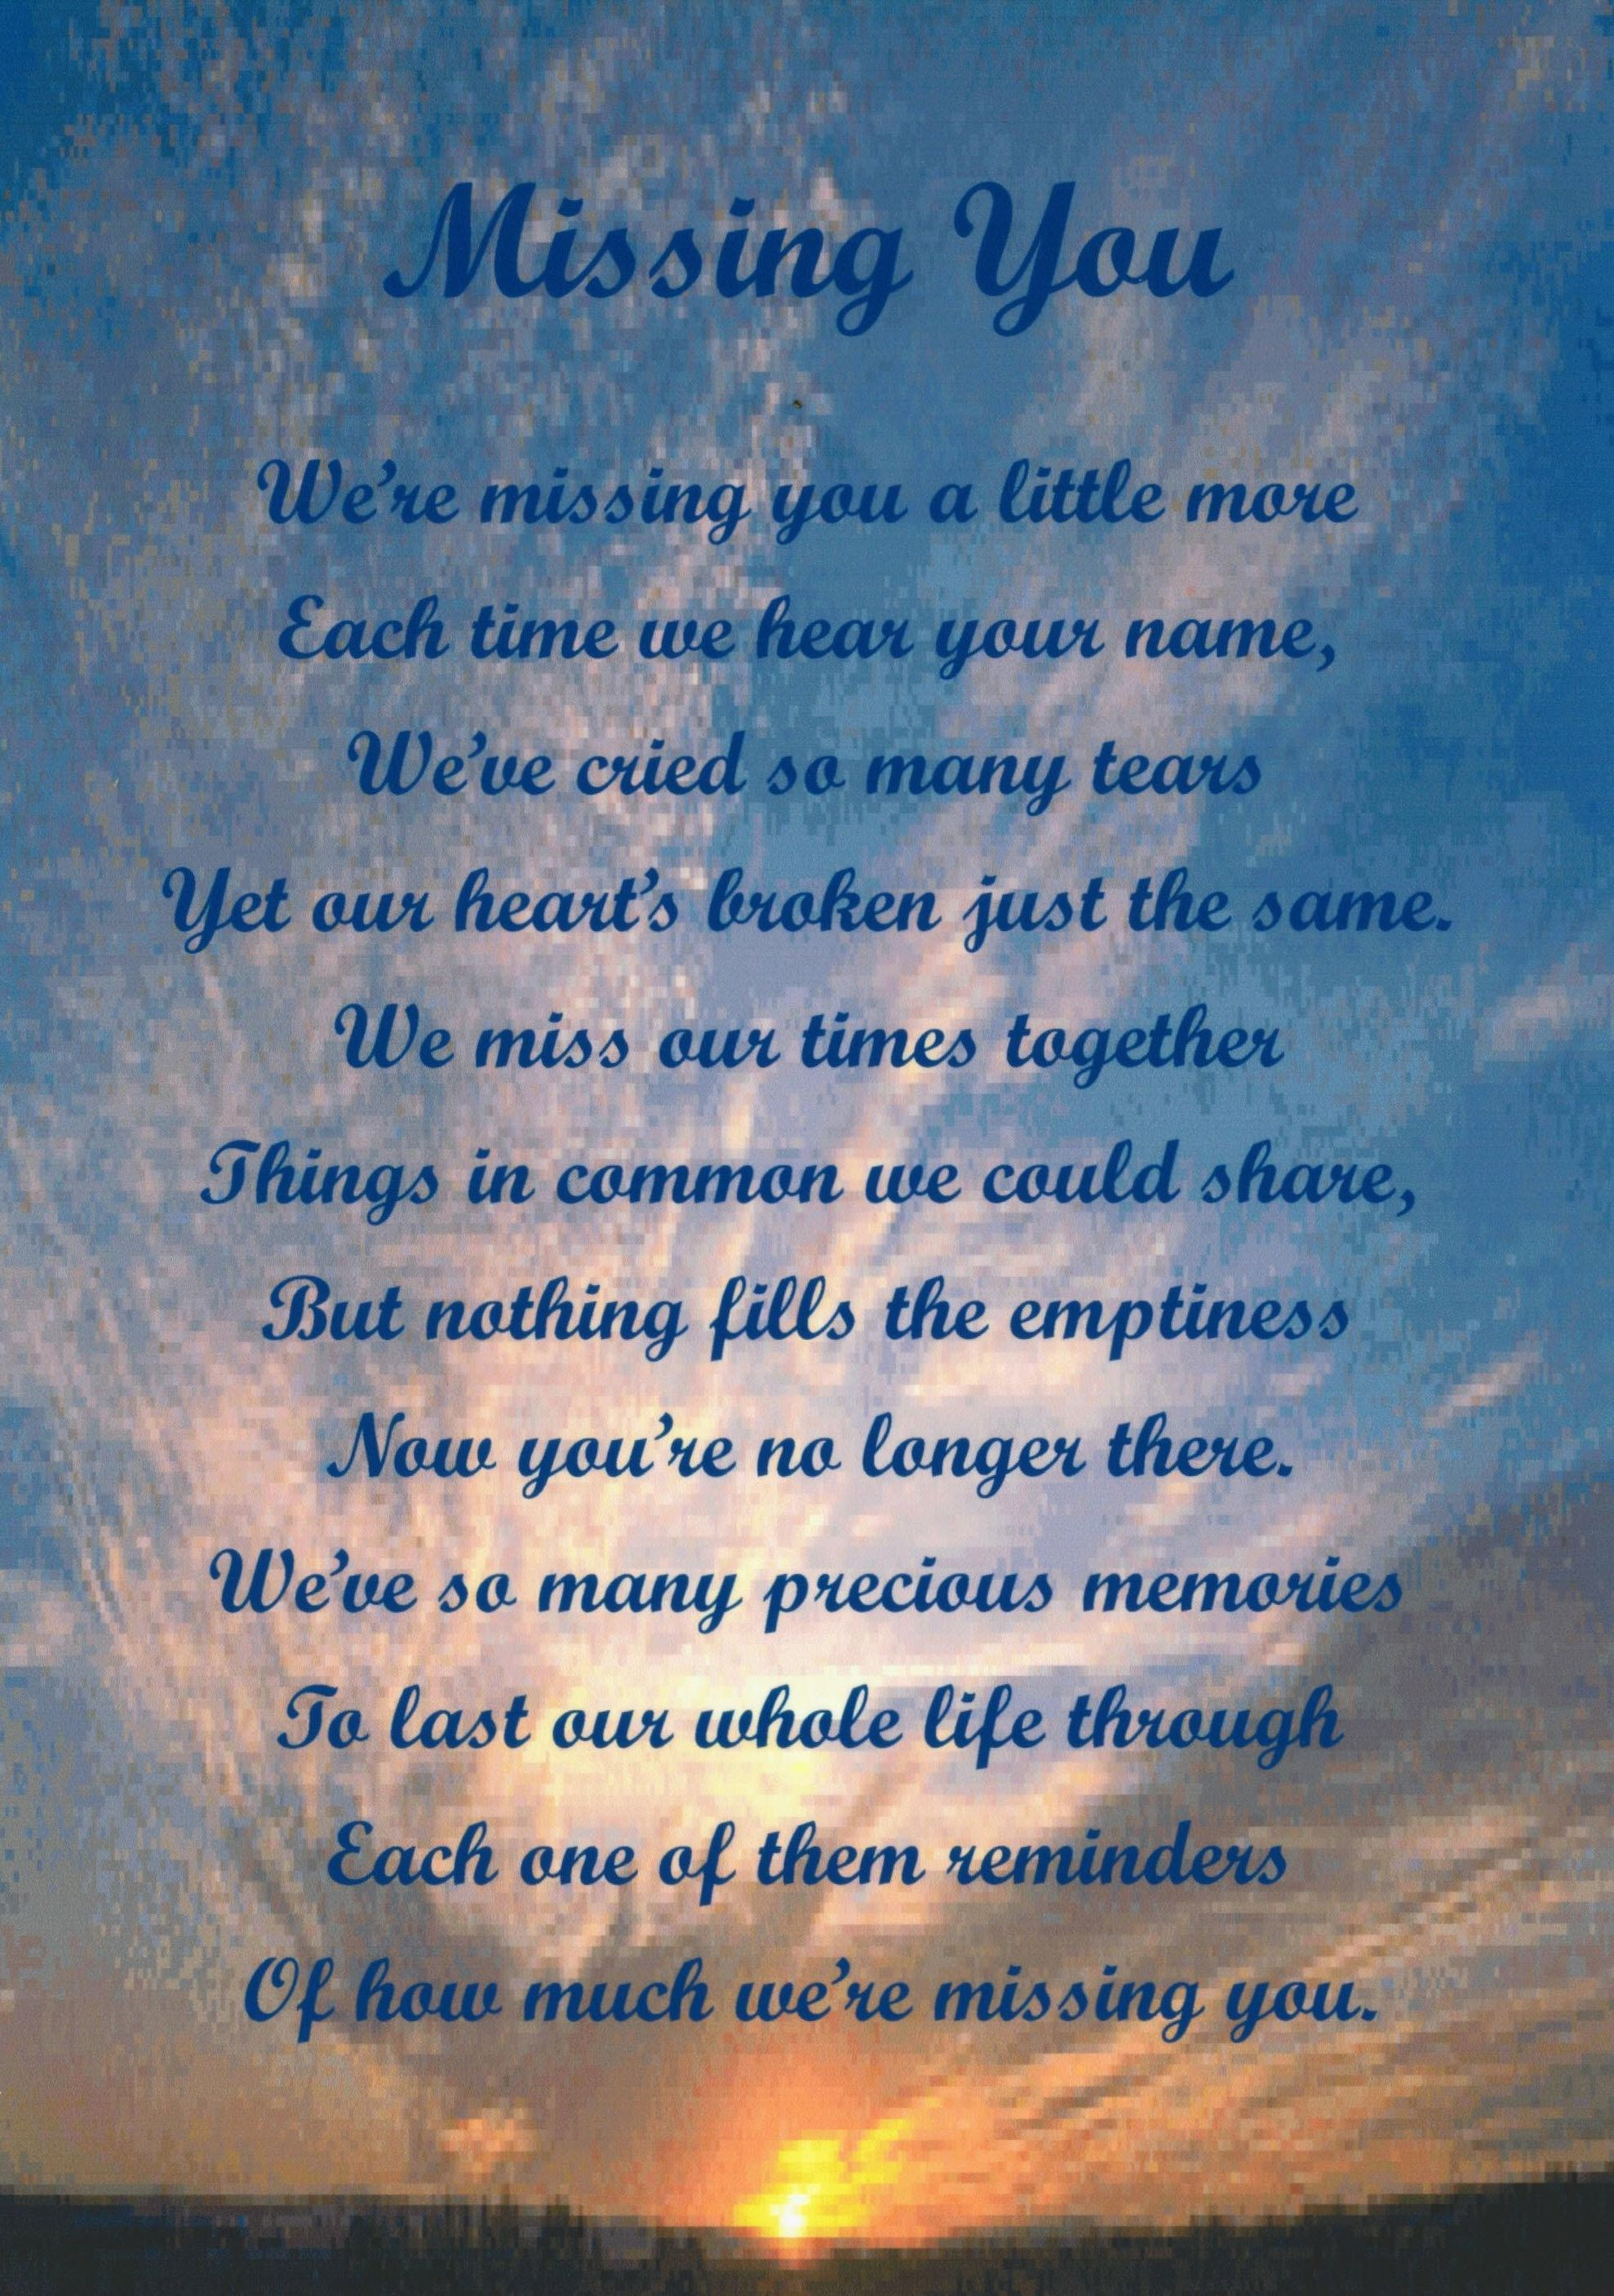 Quotes About Lost Loved Ones In Heaven 1 Year Anniversary Memorial Poems17 Pics In Our Database For